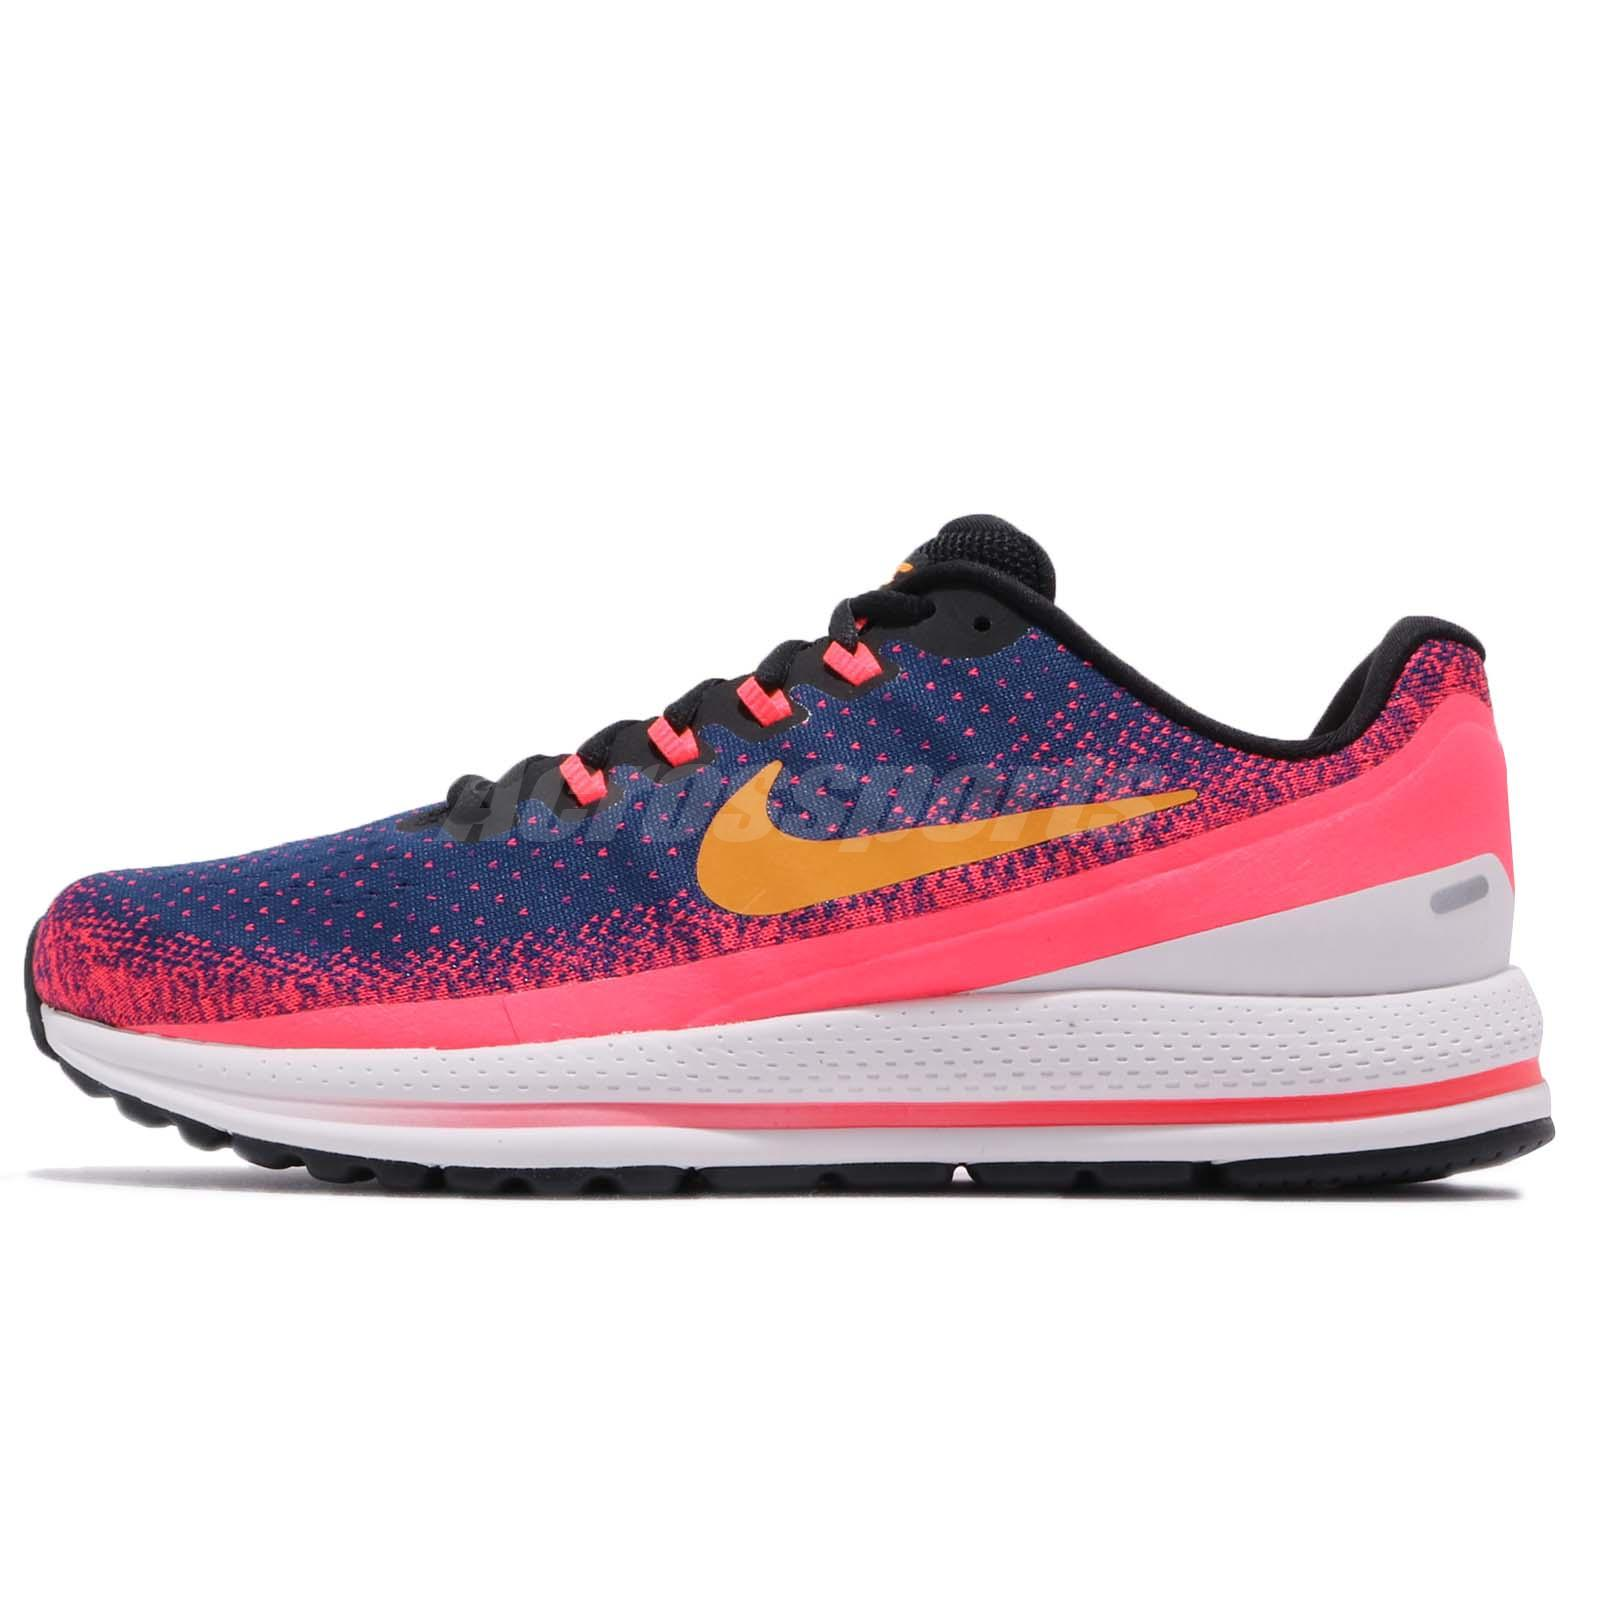 new concept e9e90 462d8 Nike Air Zoom Vomero 13 XIII Blue Void Orange Peel Men Running Shoes 922908 -483